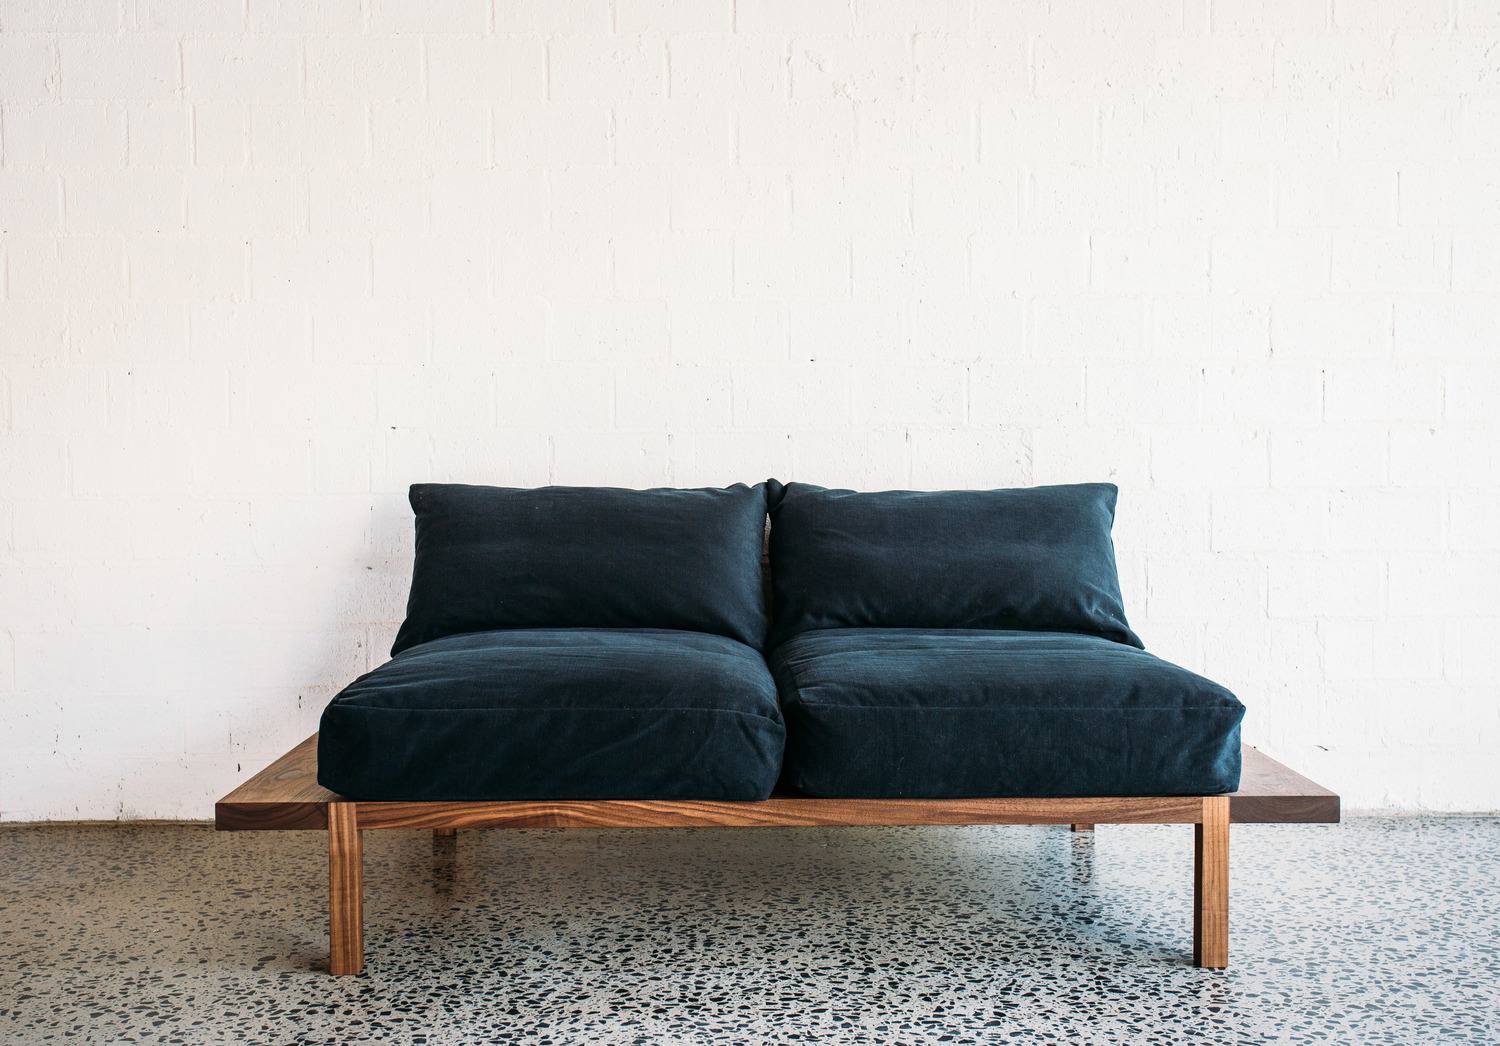 Finley Sofa - Two Seater - JD.Lee Furniture - italian dark blue upholstery